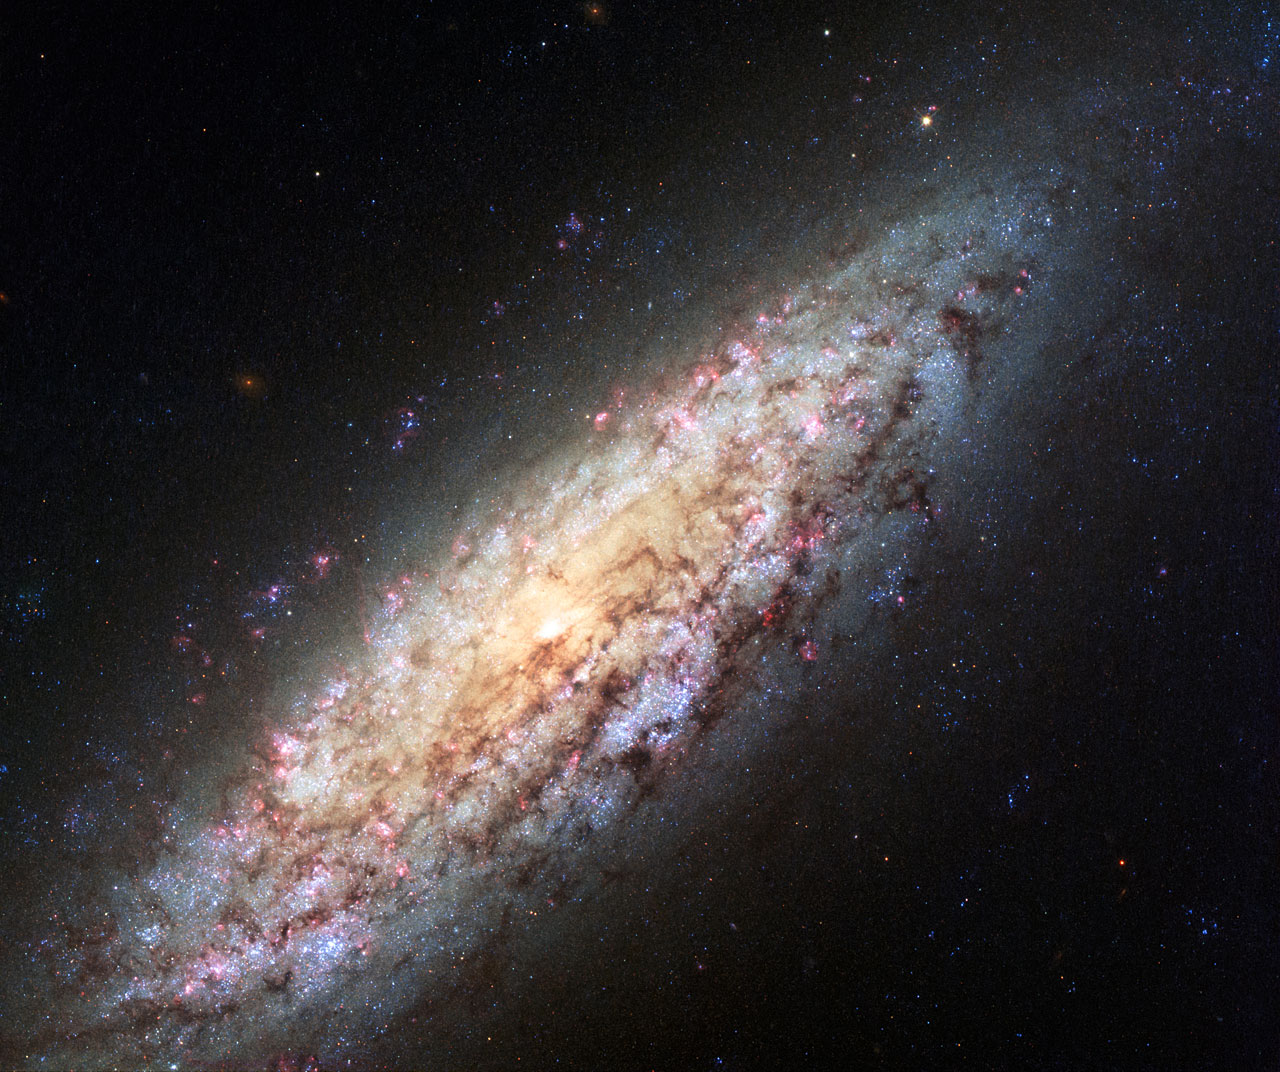 Lost in space: New Hubble image of galaxy NGC 6503